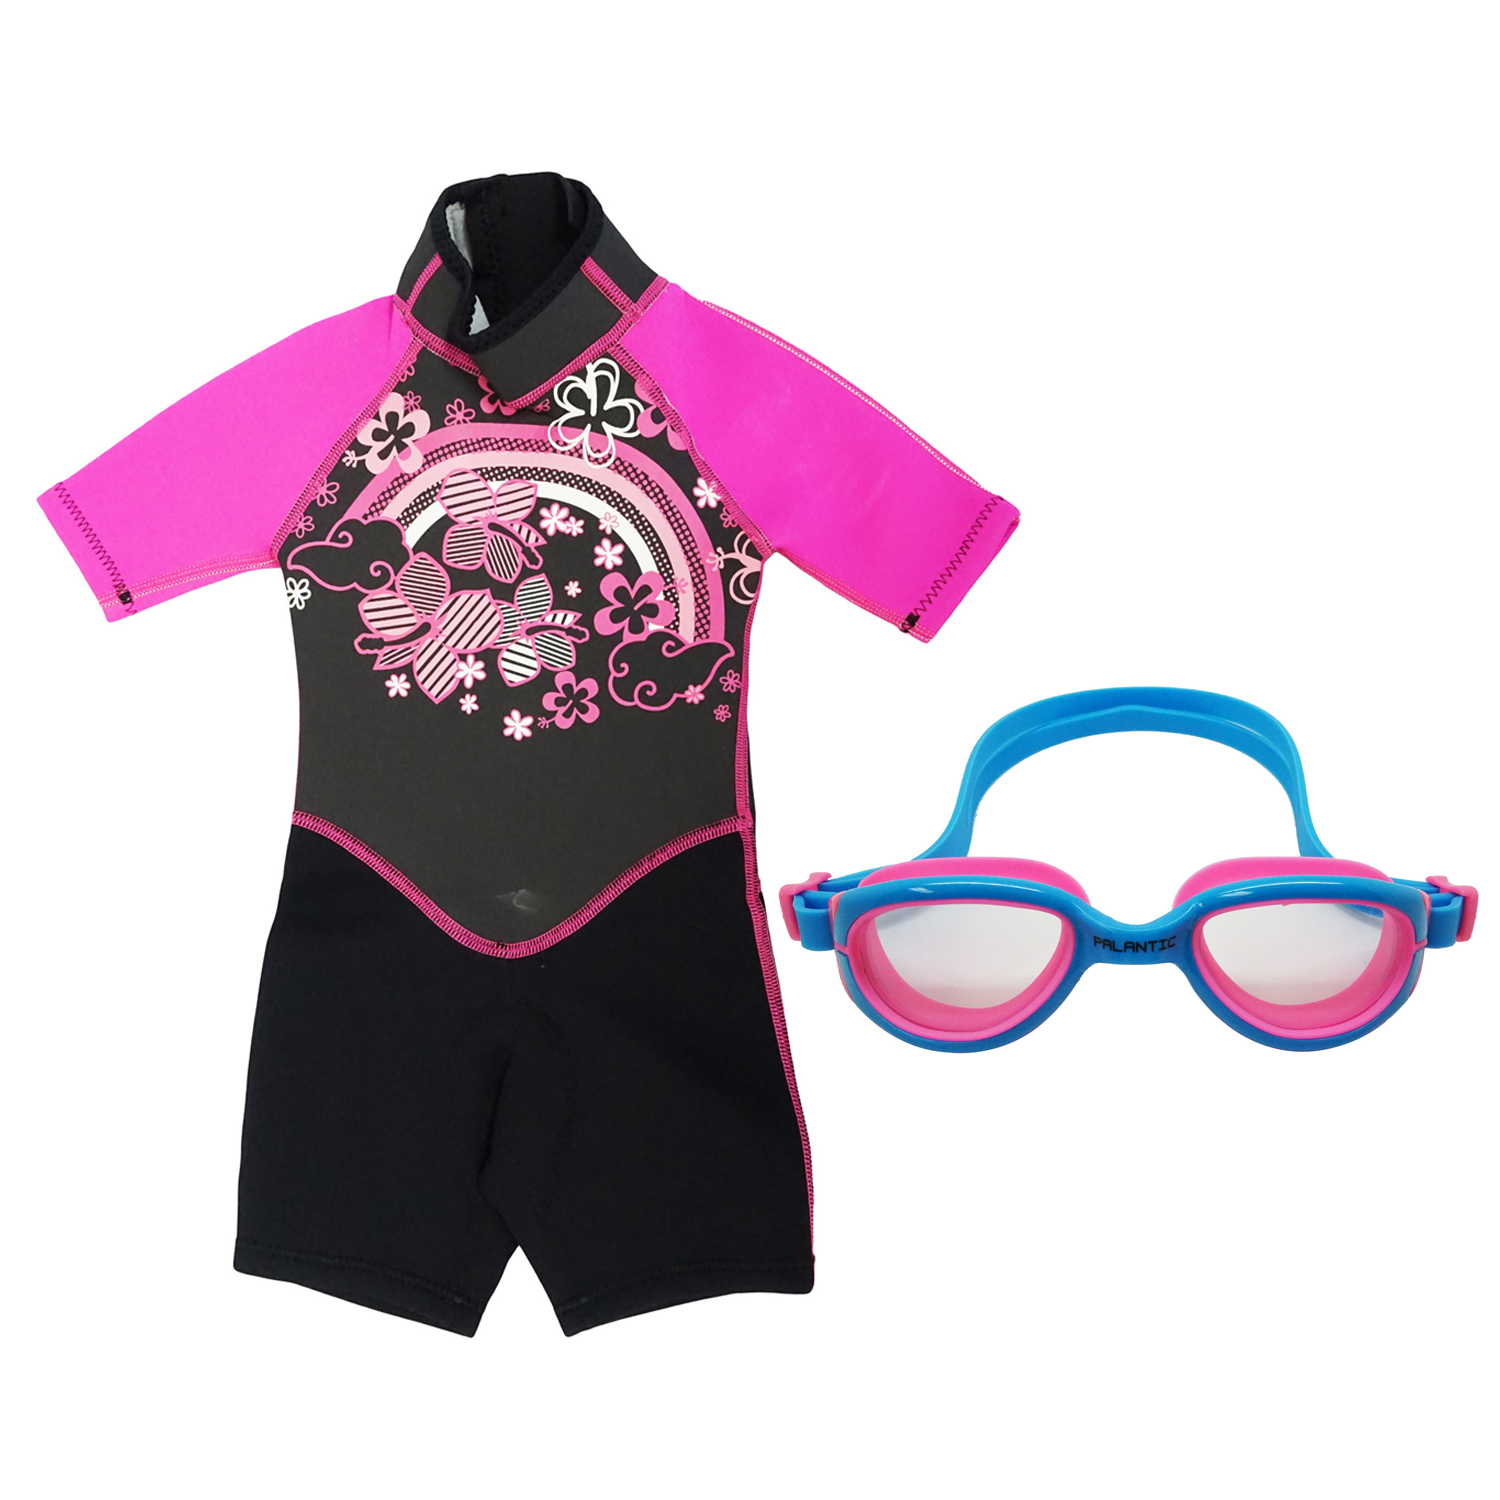 Kiddi Choice Kids 2.5mm Neopreme Short Sleeve Wetsuit Black/Pink w/ Swim Goggles Blue/Pink, 6